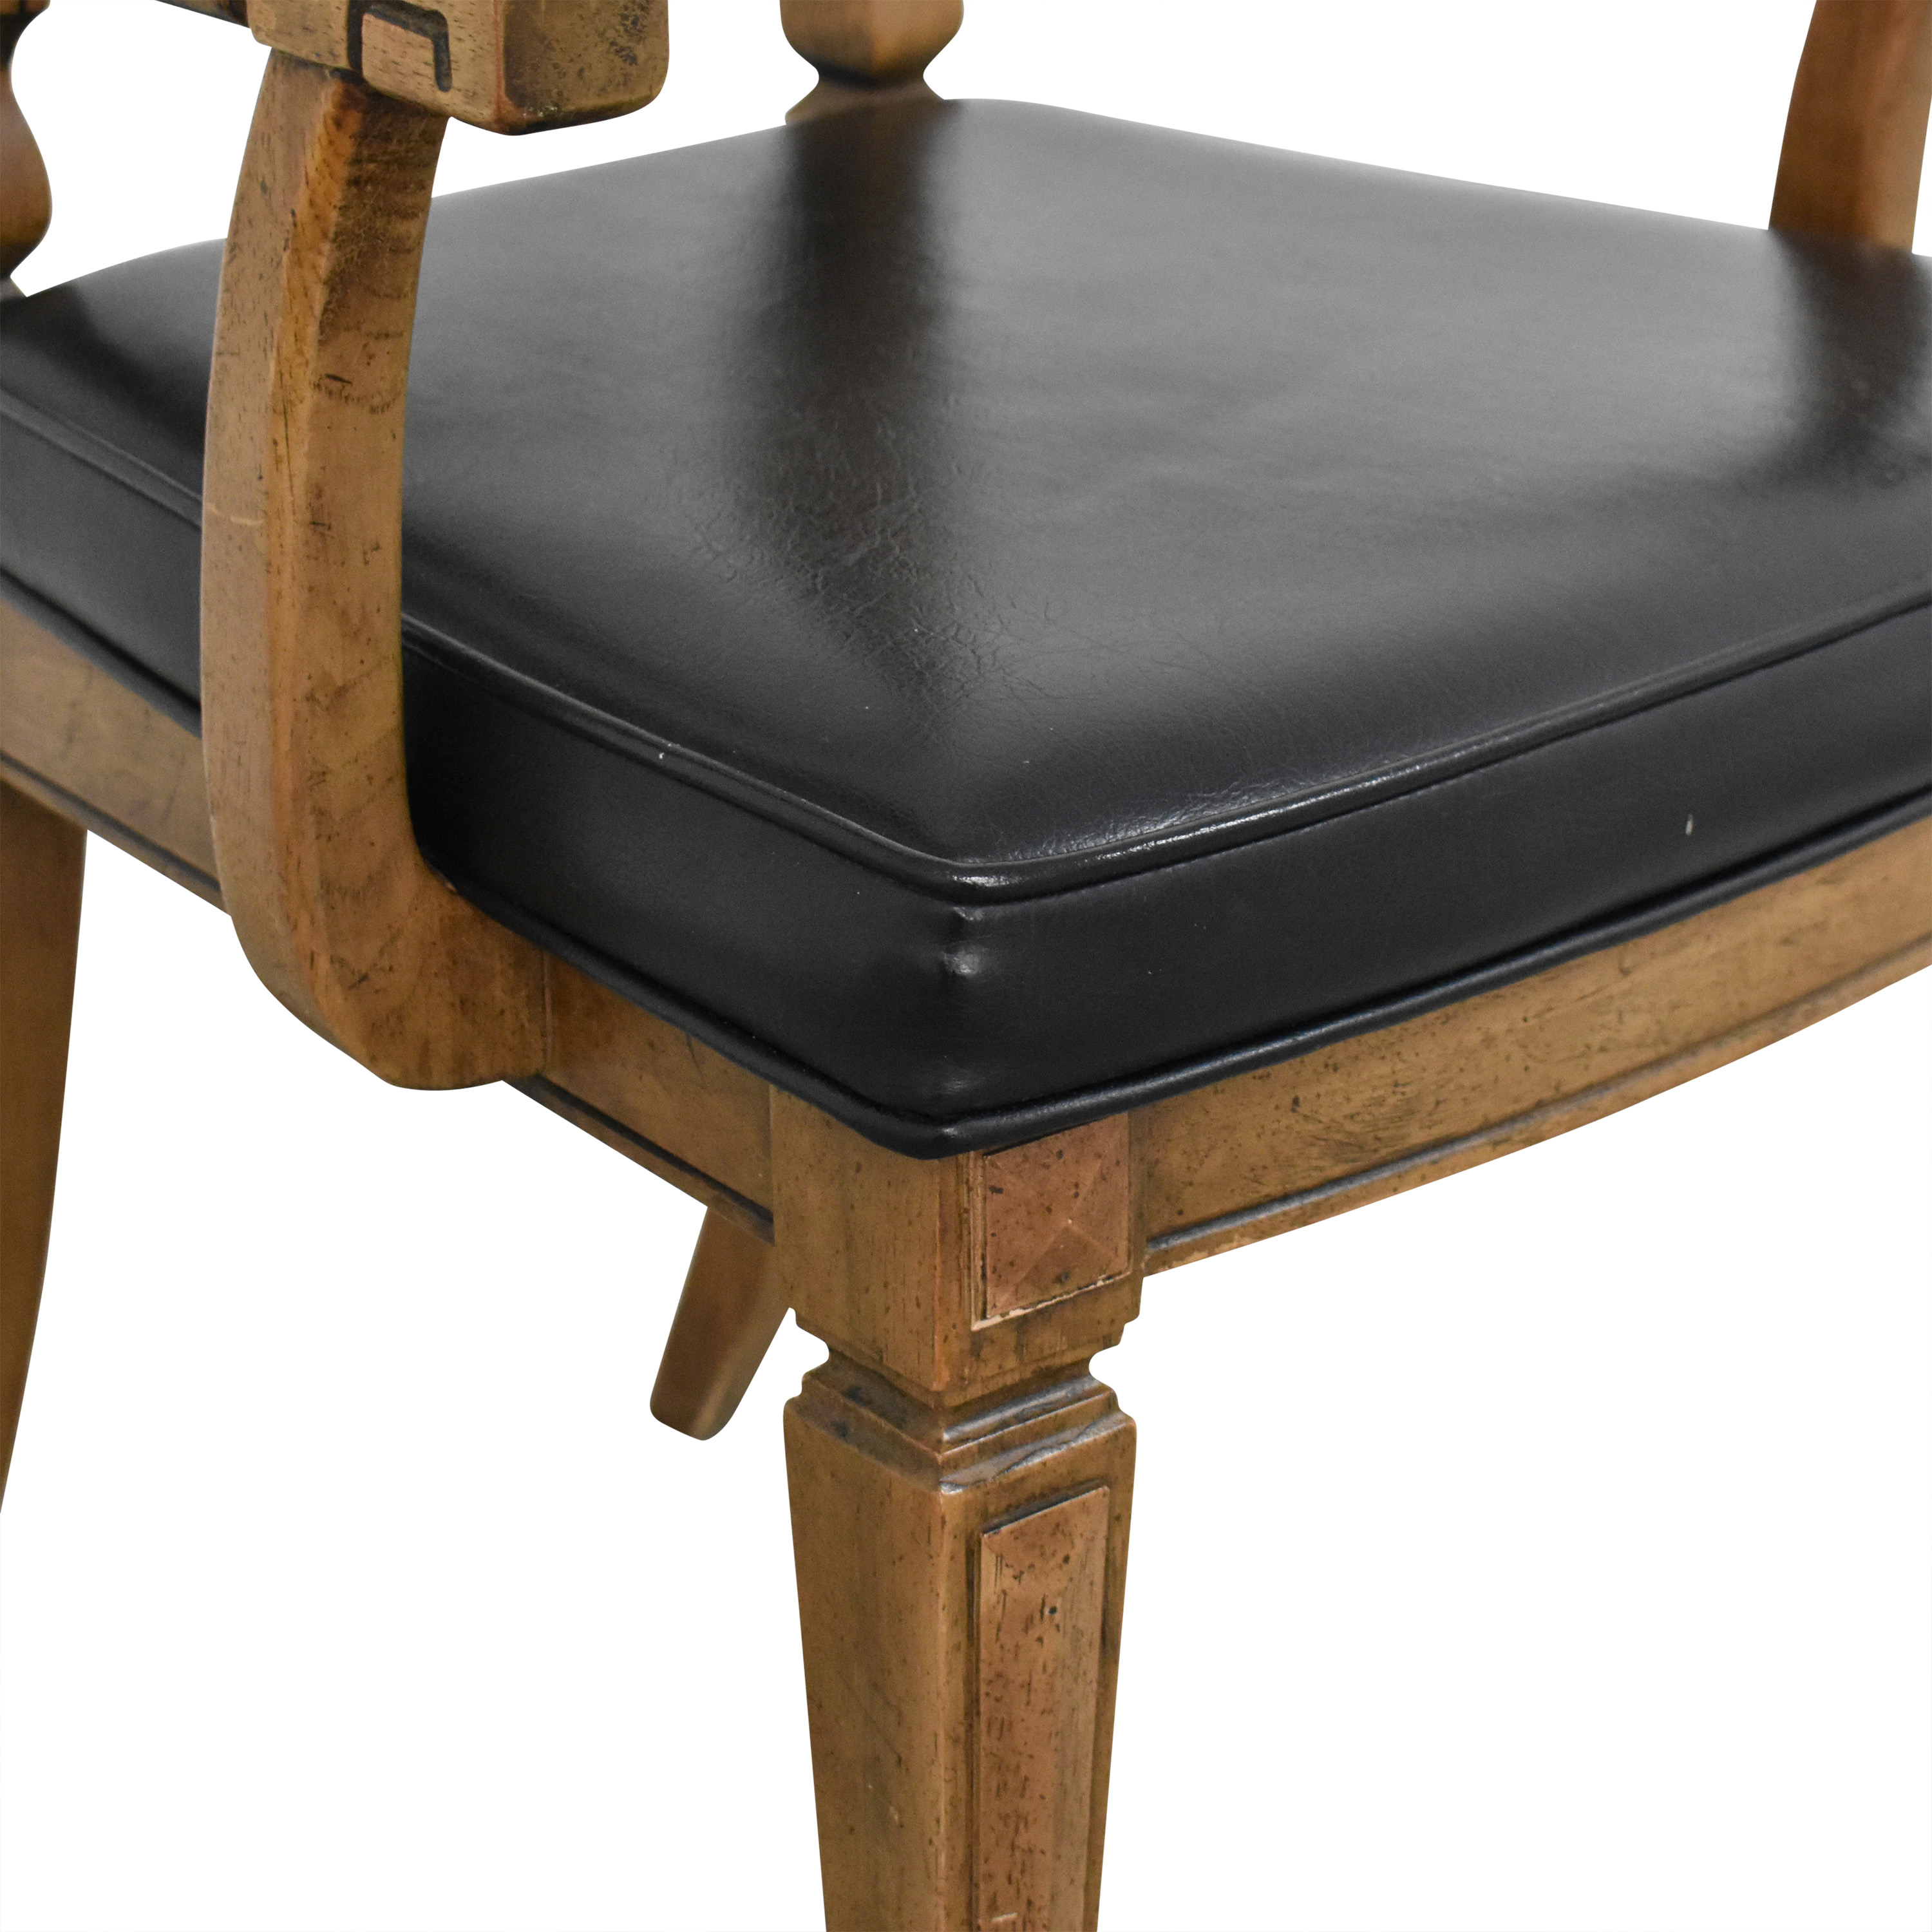 Thomasville Thomasville Tall Ladder Back Dining Arm Chair discount